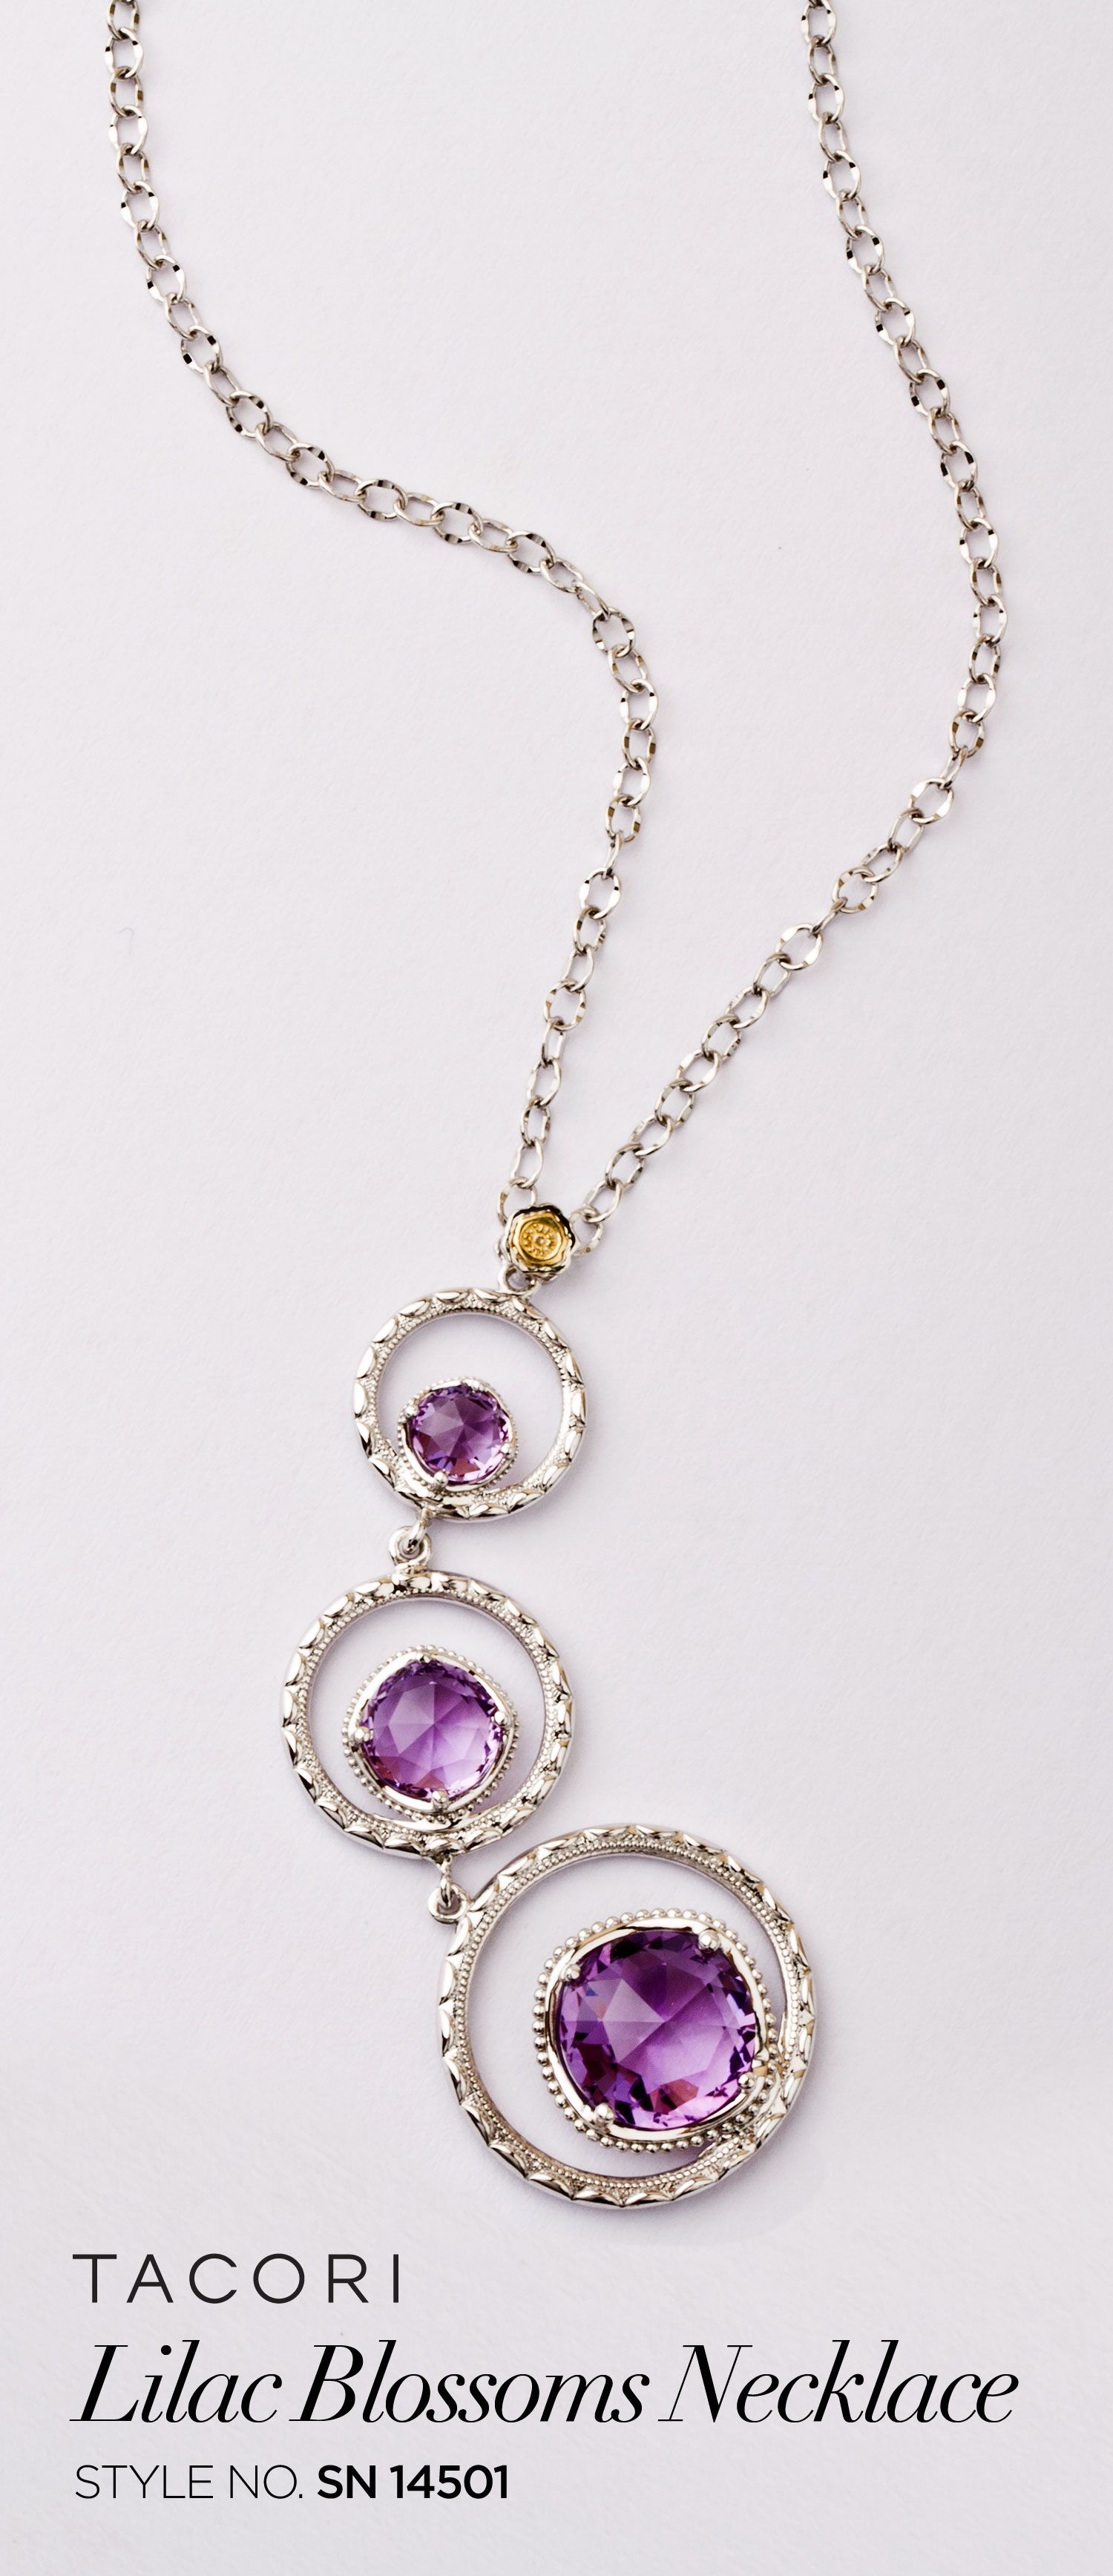 Three floating Amethyst gems sparkle and glisten in crescent engraved silver halos, detailed with unique designs for truly incredible precision. Breathtaking from any angle, the contrast of the regal purple and glittering silver creates a unique beauty for any outfit.